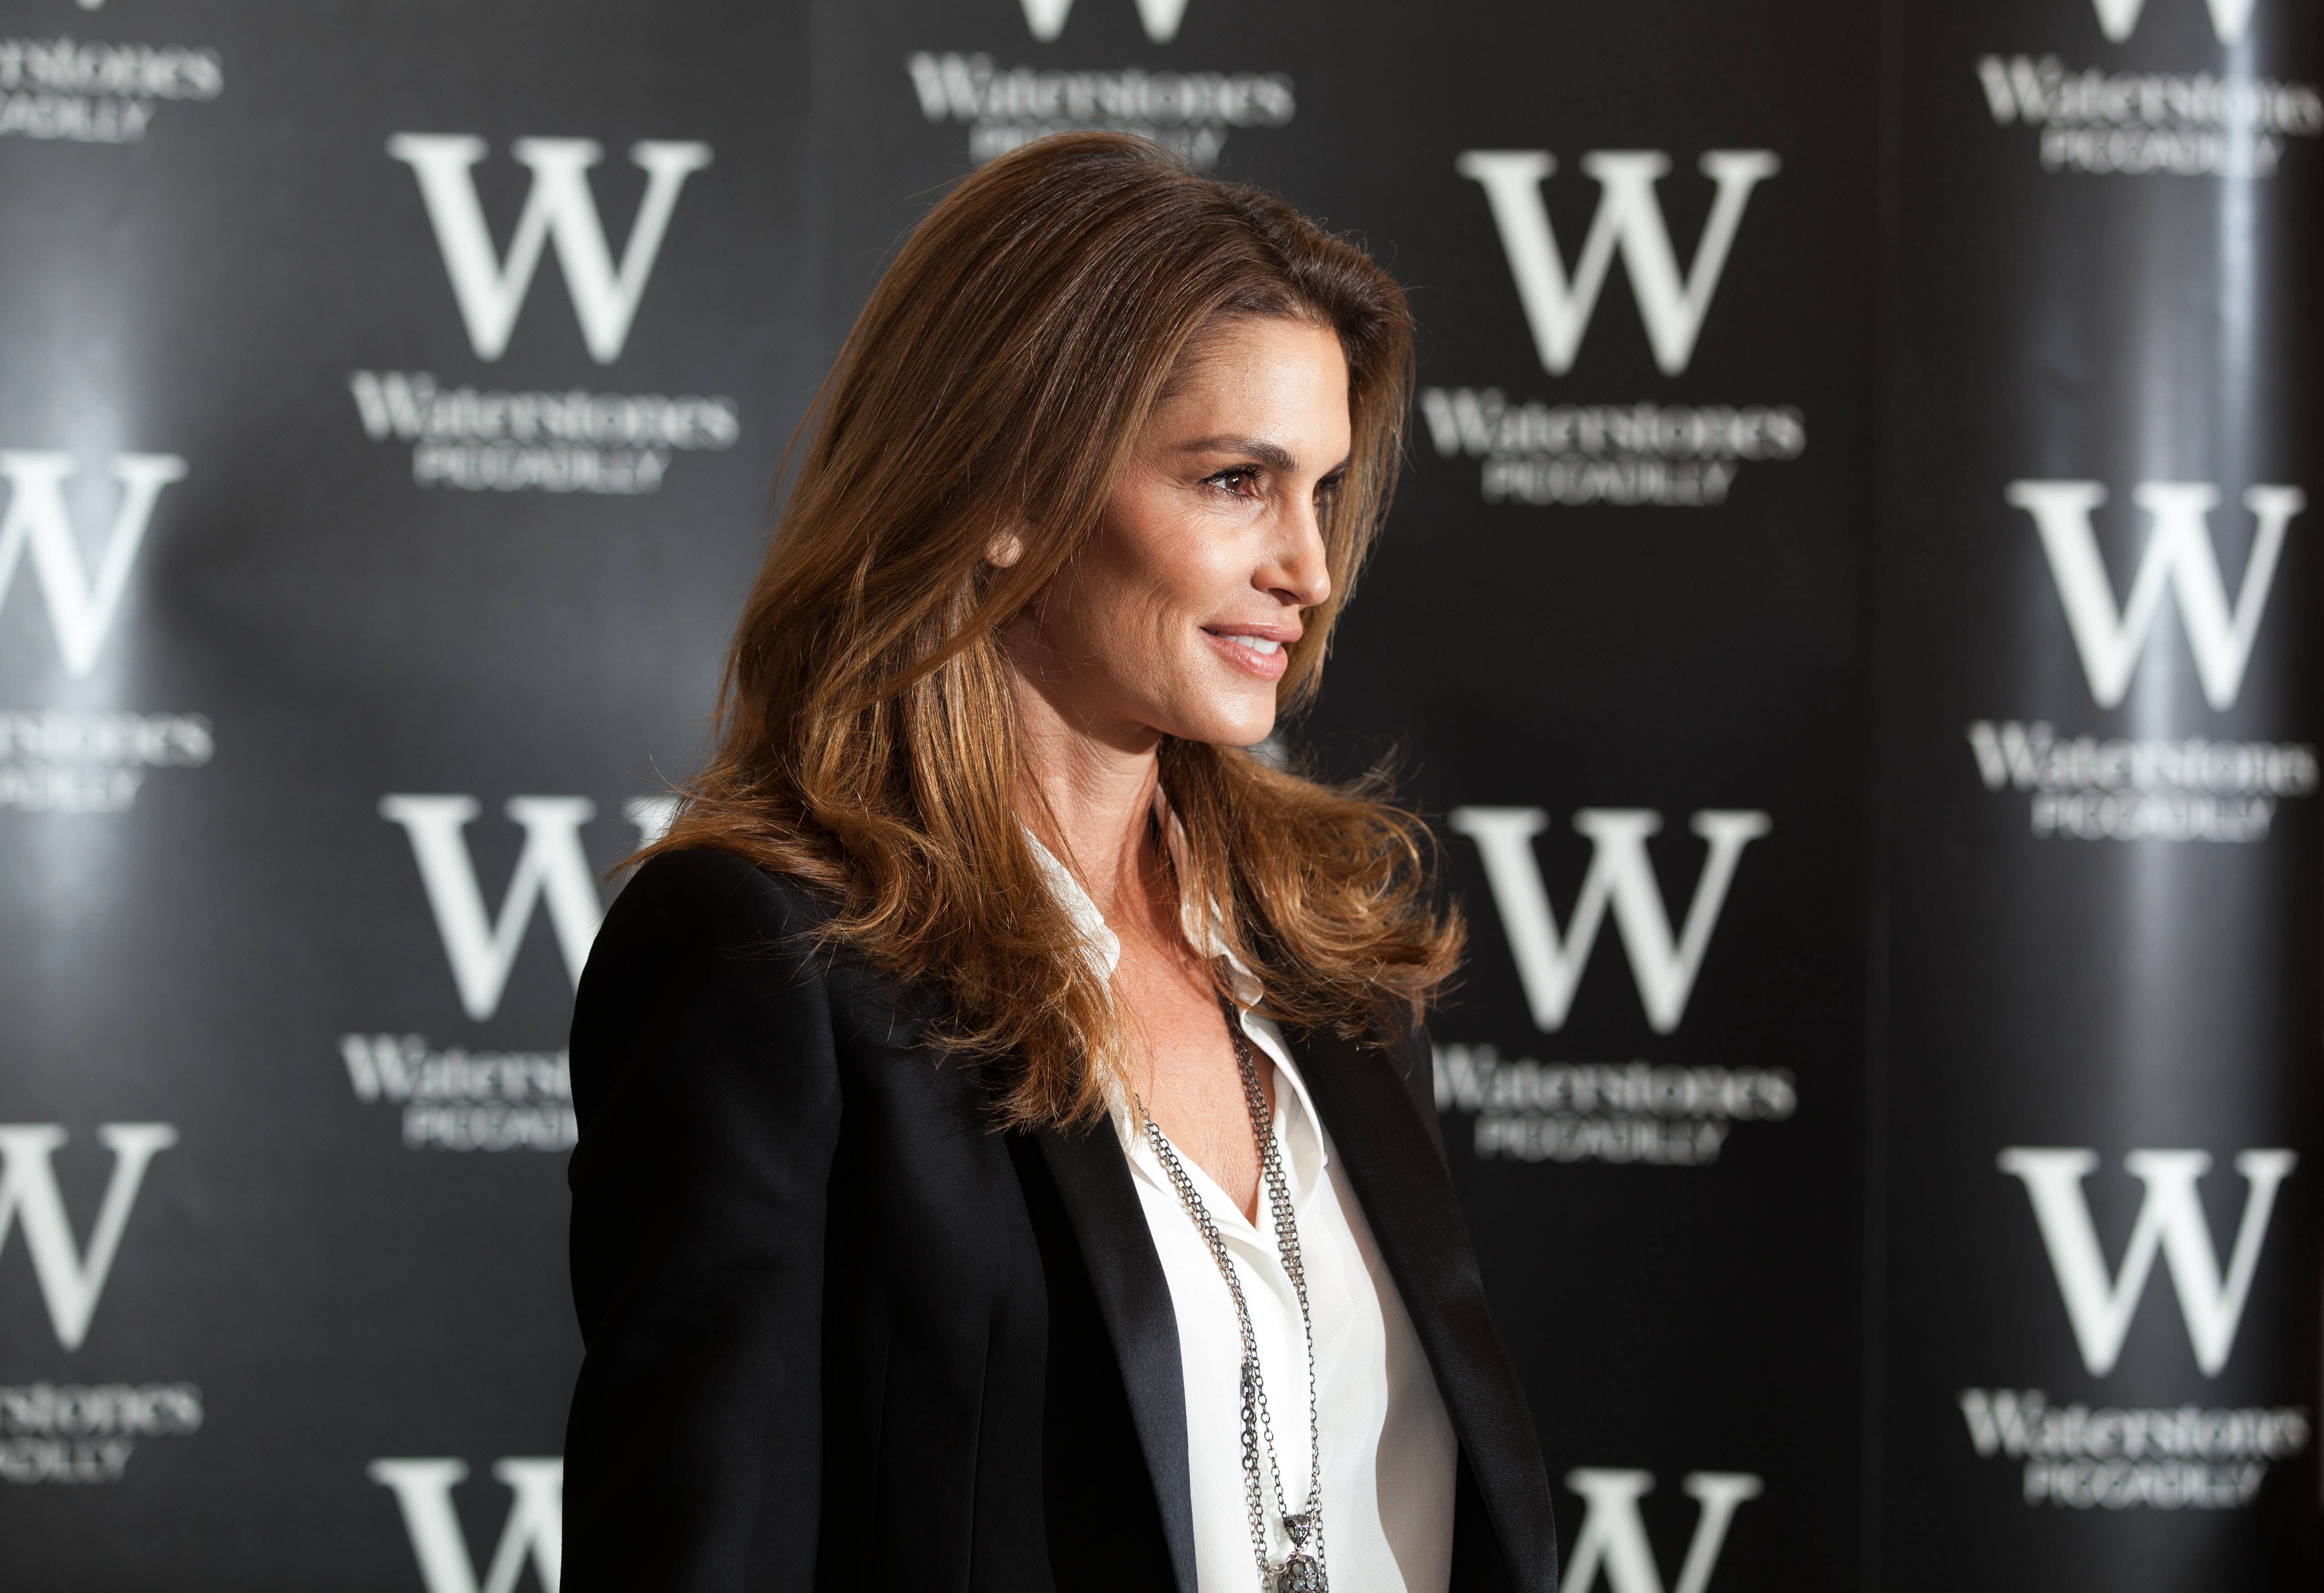 Ex-supermodel Cindy Crawford  poses for photographers  at the launch of her book in central London, Oct. 2,  2015